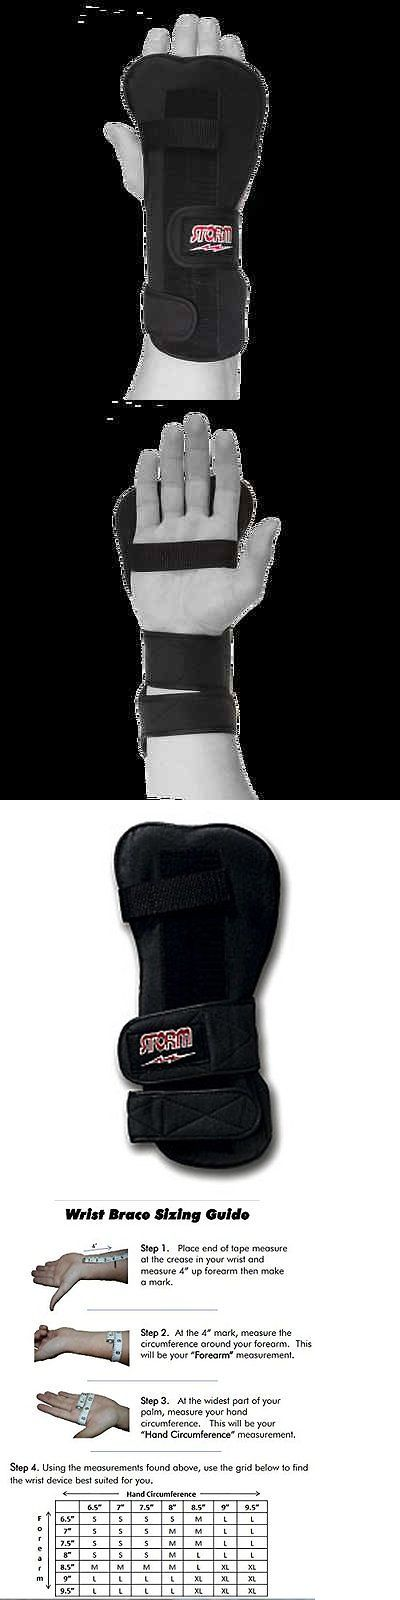 Gloves 111256: Storm Bowling Wrist Support Right Hand Large Xtra-Roll Wrist Support In Black -> BUY IT NOW ONLY: $38.99 on eBay!